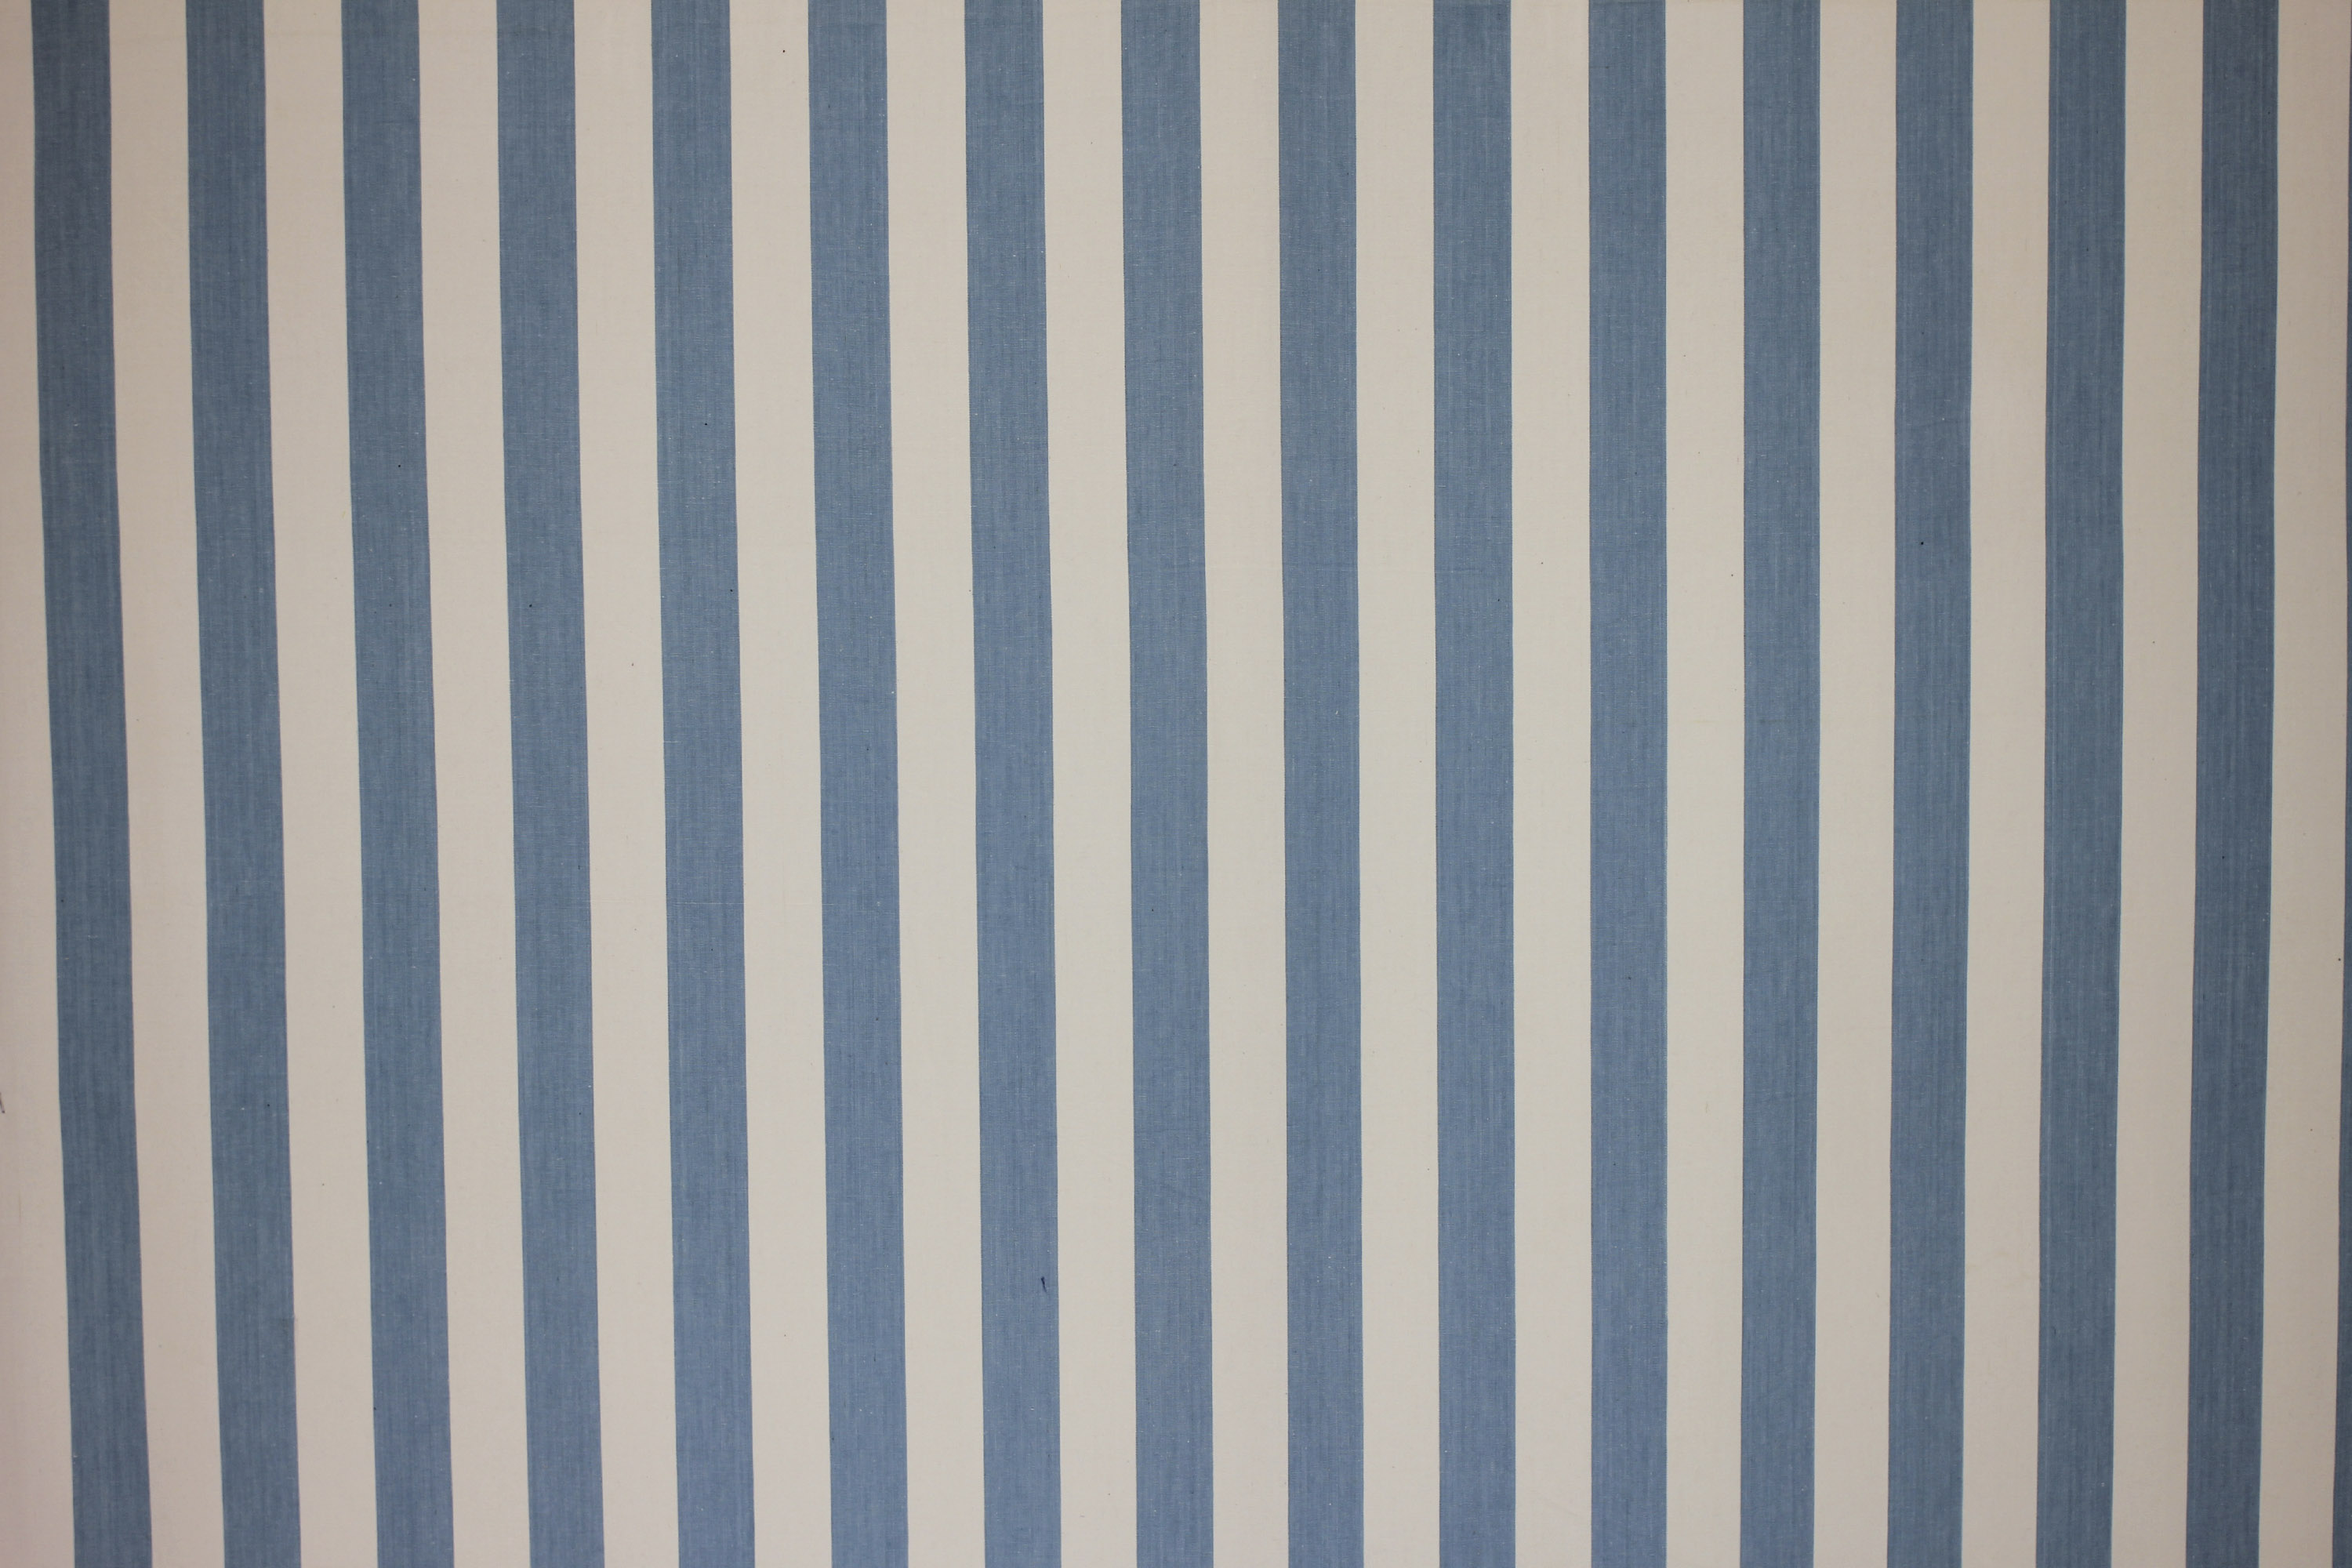 Pale Blue Striped Fabrics | Stripe Cotton Fabrics | Striped Curtain Fabrics | Upholstery Fabrics  Javelin Stripes